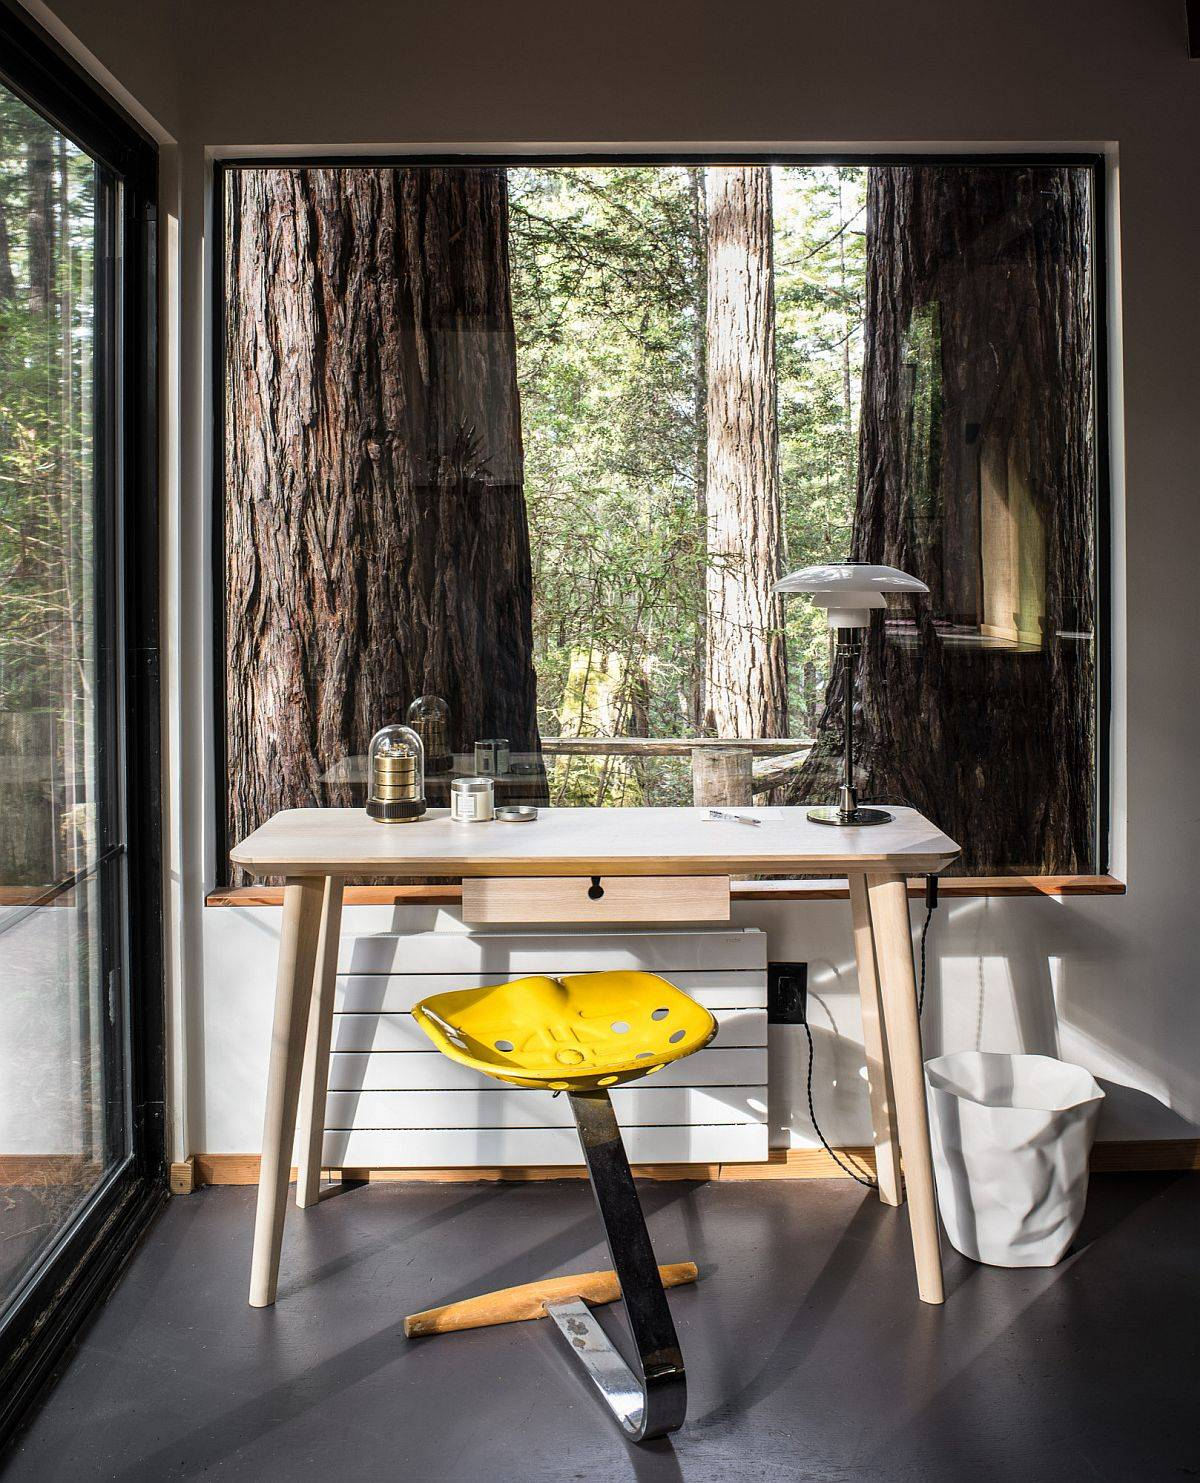 Dense canopy outside and the giant trees give rustic appeal to this small mdoern rustic home office